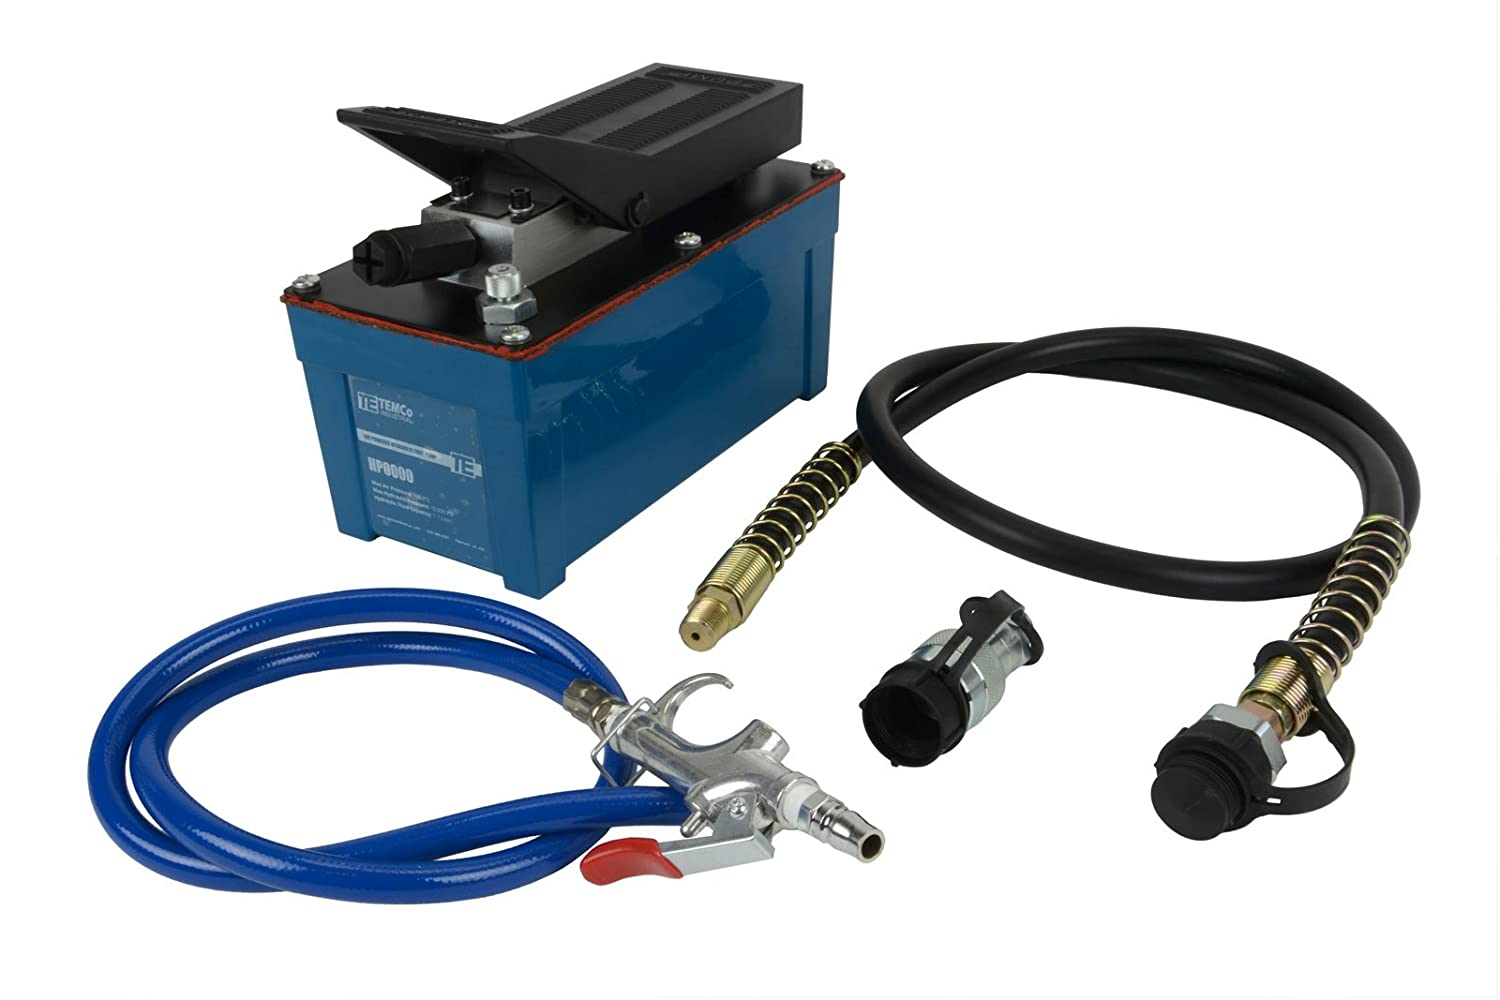 TEMCo HP0000 - Air Hydraulic Pump Power Pack Unit 10, 000 psi 103 cubic in Capacity - 5 YEAR Warranty